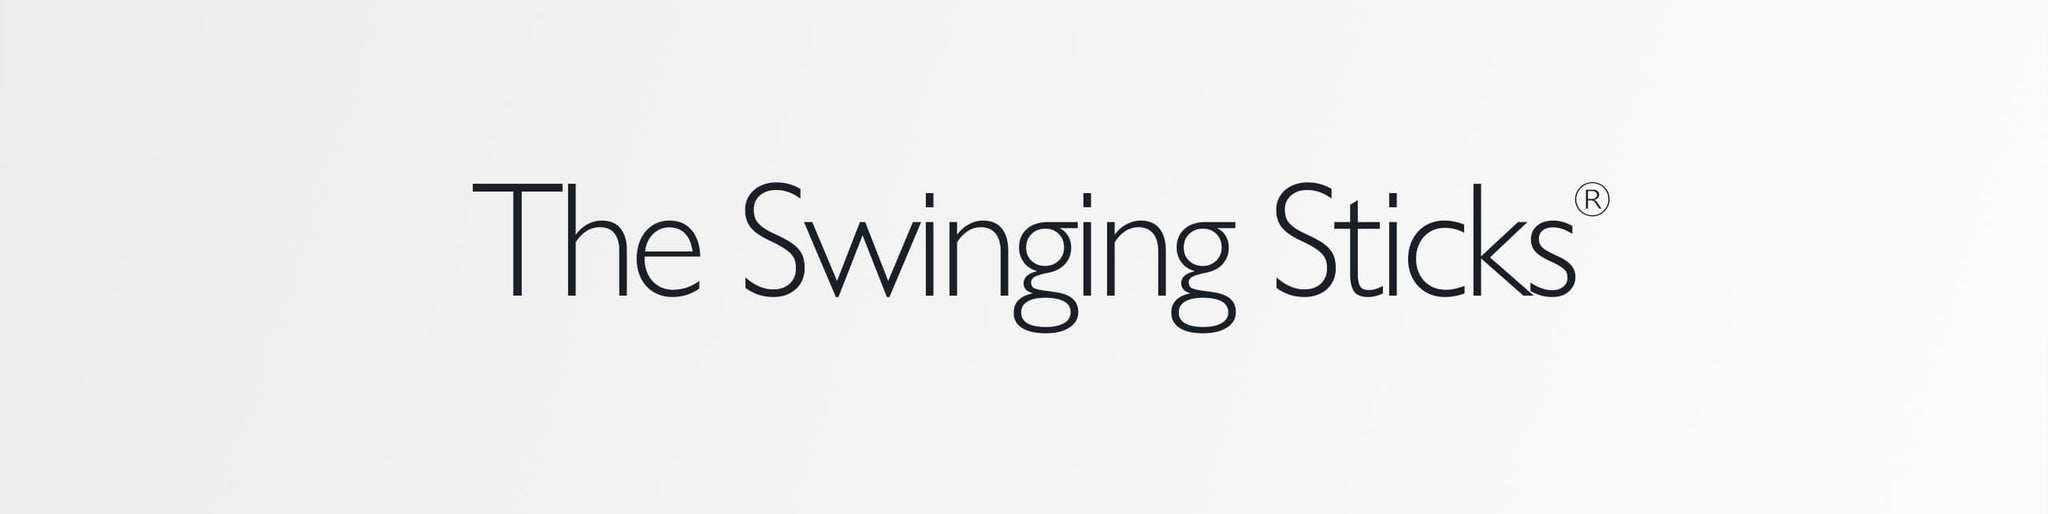 The Swinging Sticks Logo Banner